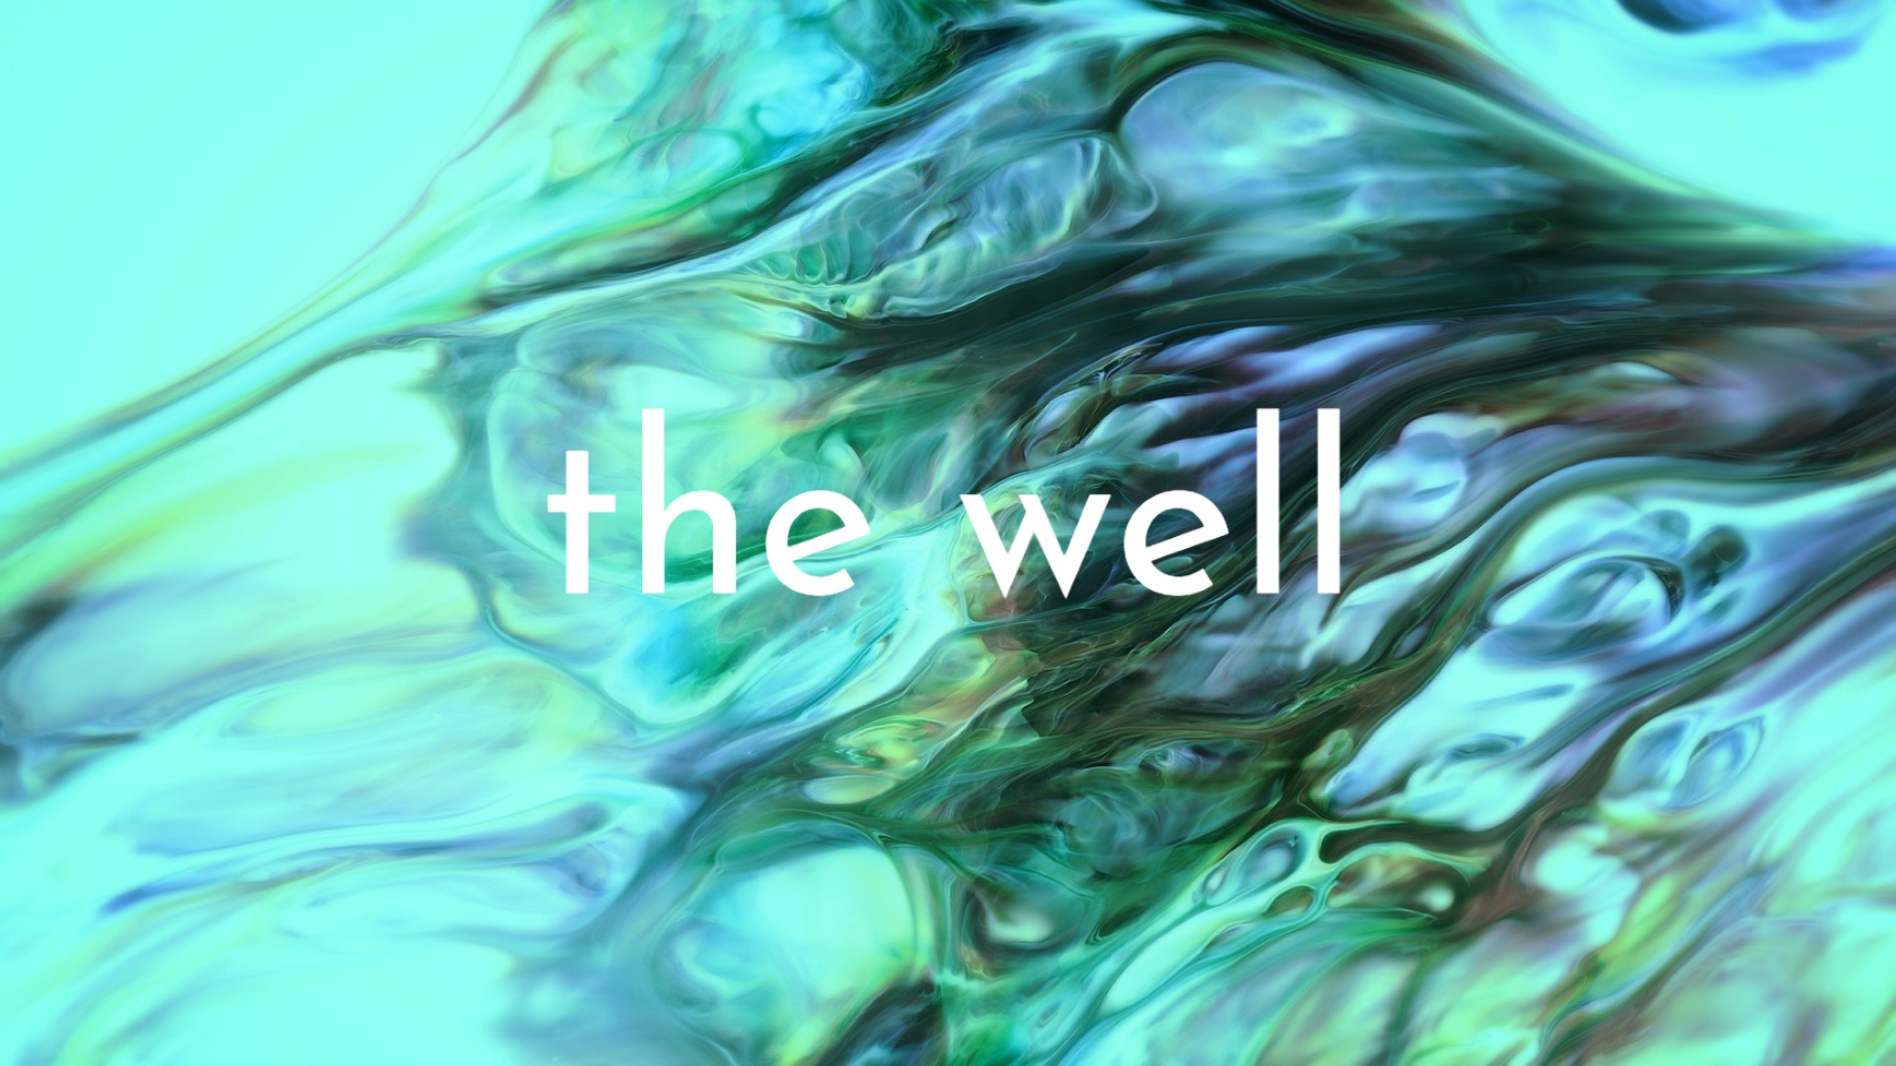 The Well 3 image